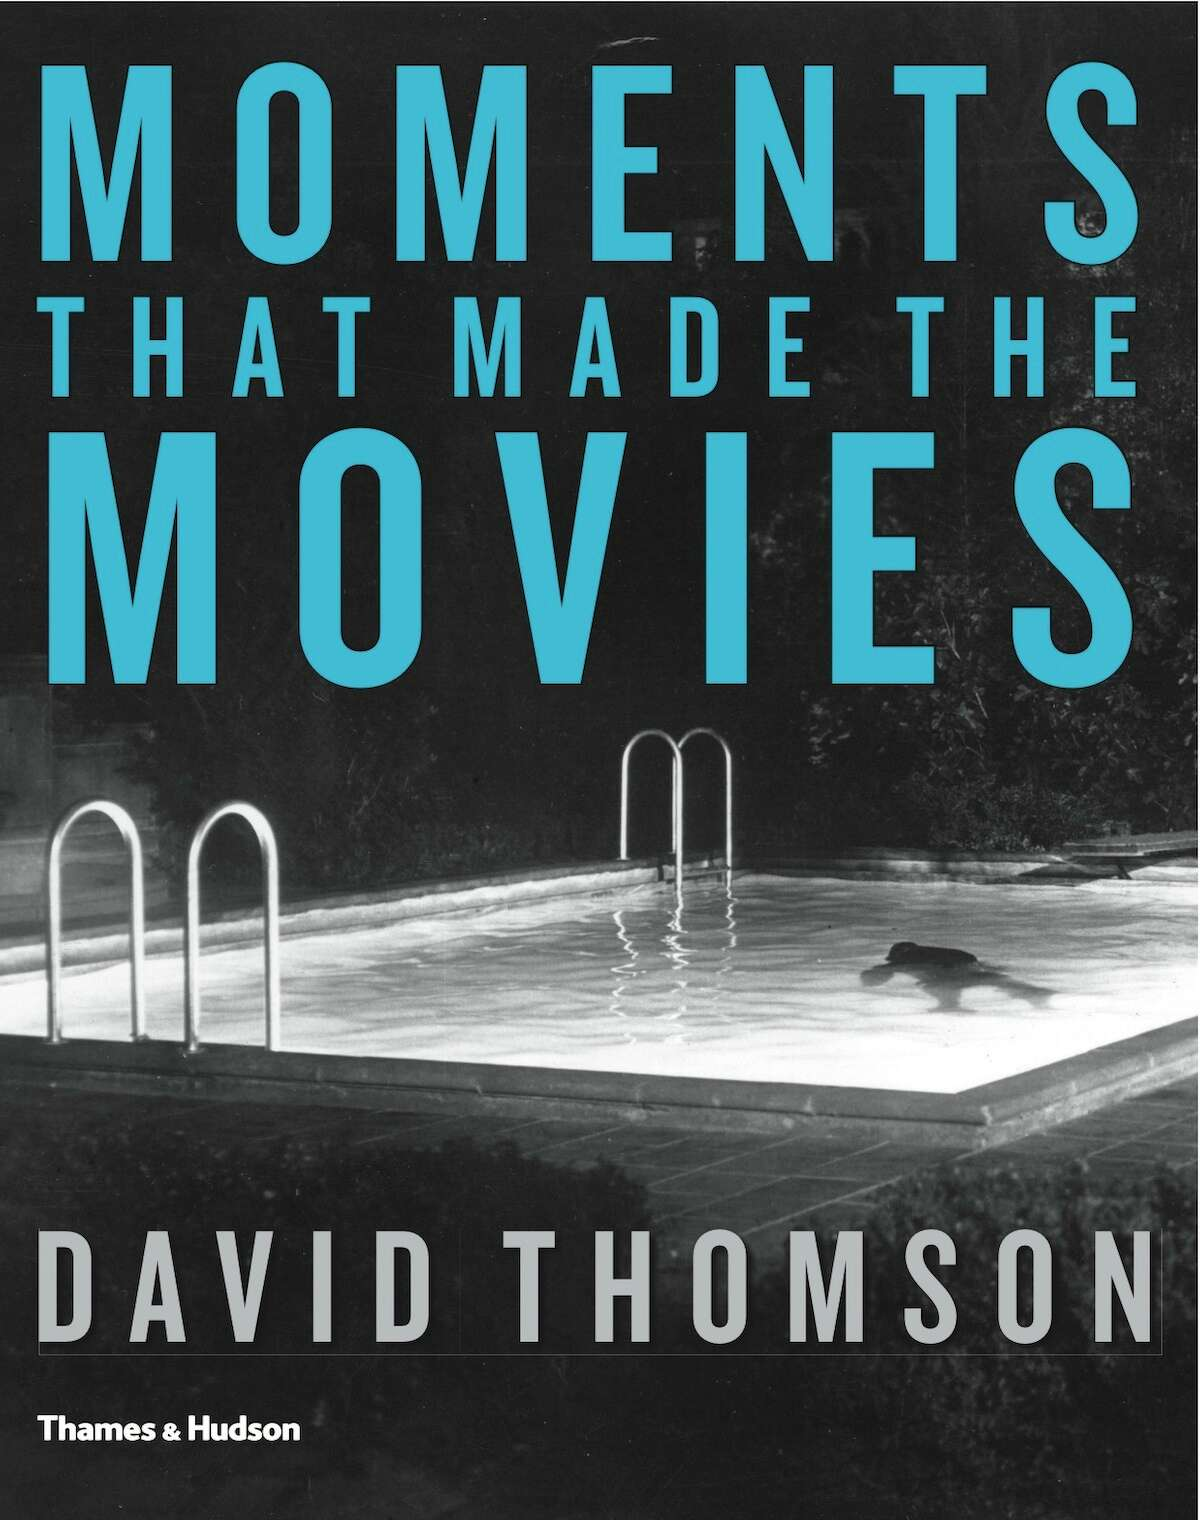 Moments That Made the Movies, by David Thomson